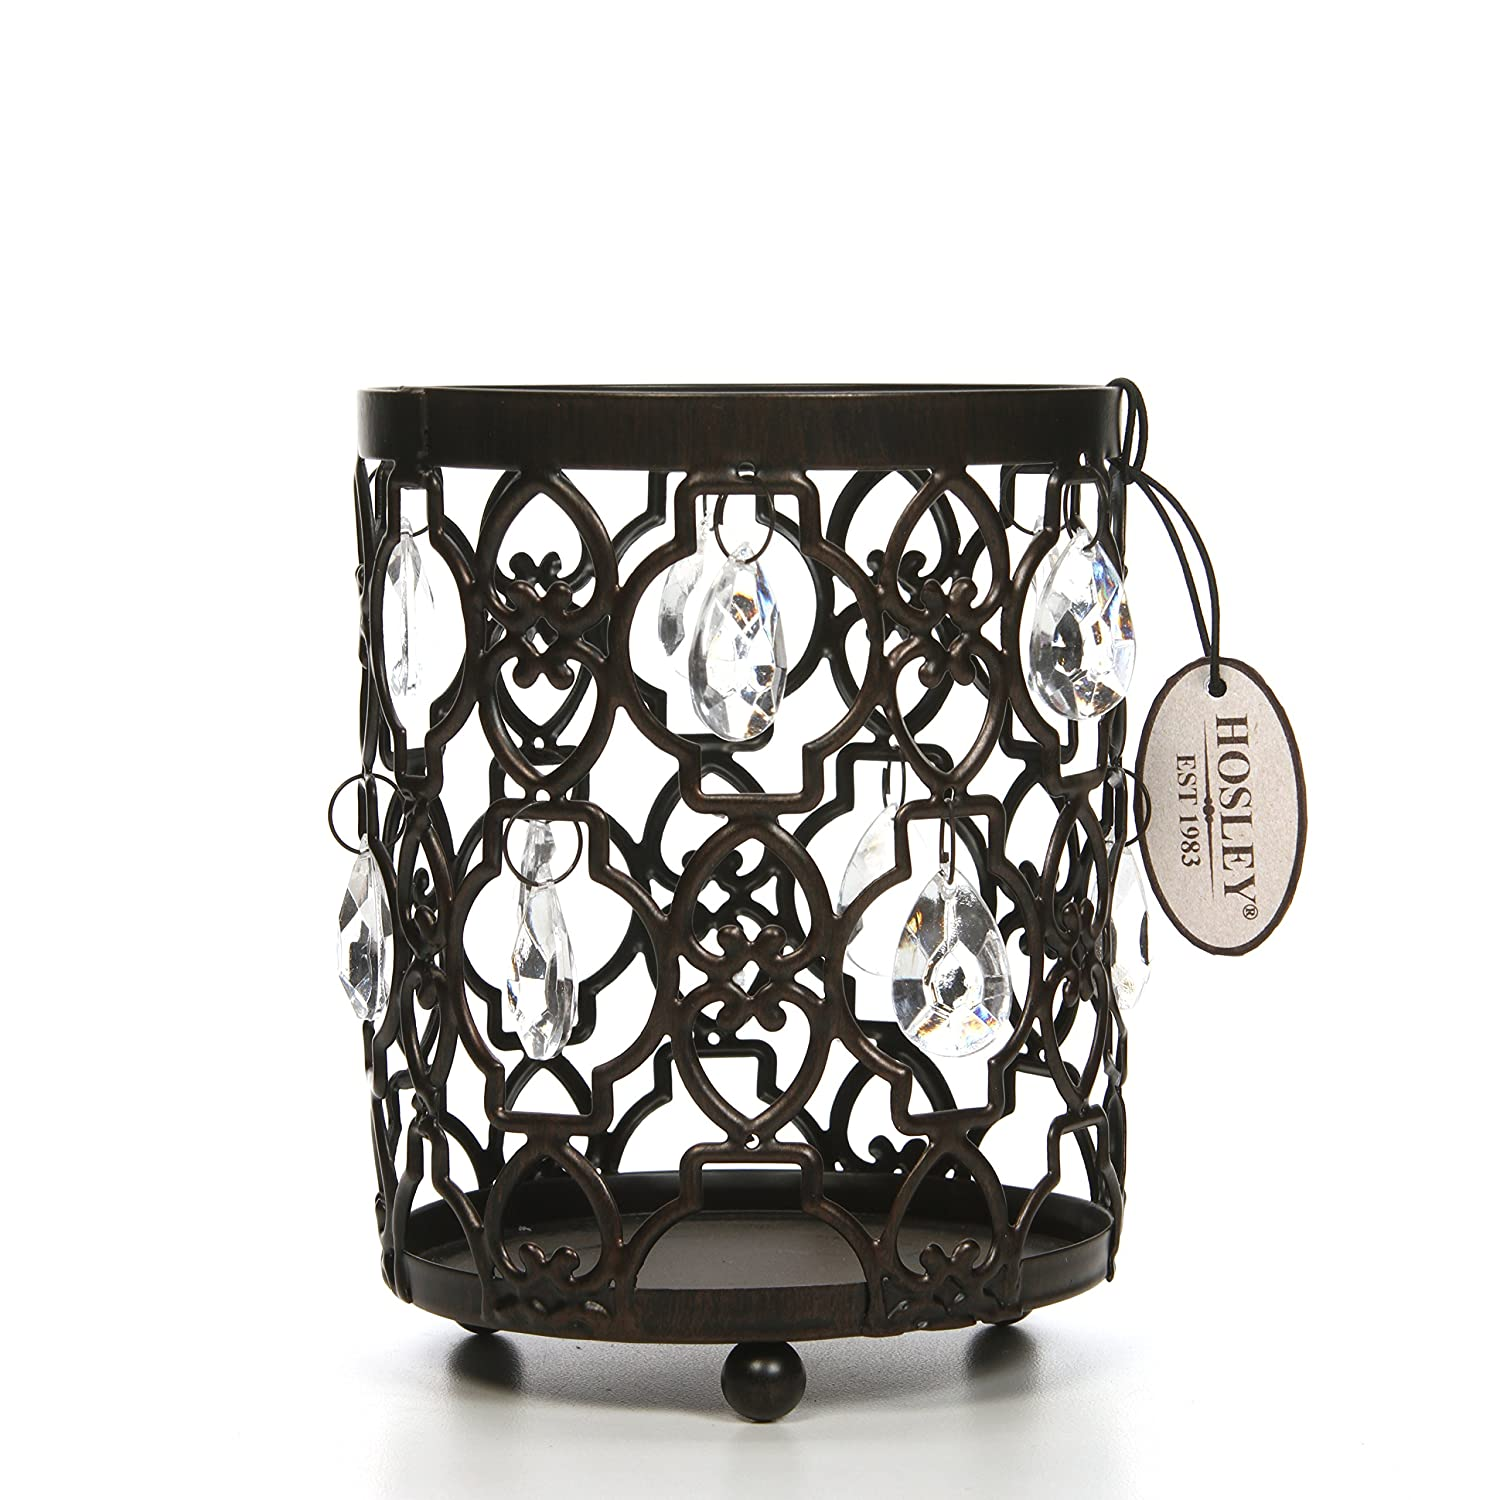 Hosley Romantic Sparkle Candle Holder/Lantern with Clear Glass Style Crystal Dandles, 5.5 High. Ideal Gift Wedding, Spa, Bridal, Aromatherapy, Reiki, Chakra, Candle Garden Setting O7 HG Global FBA-H51864PS-1-EA